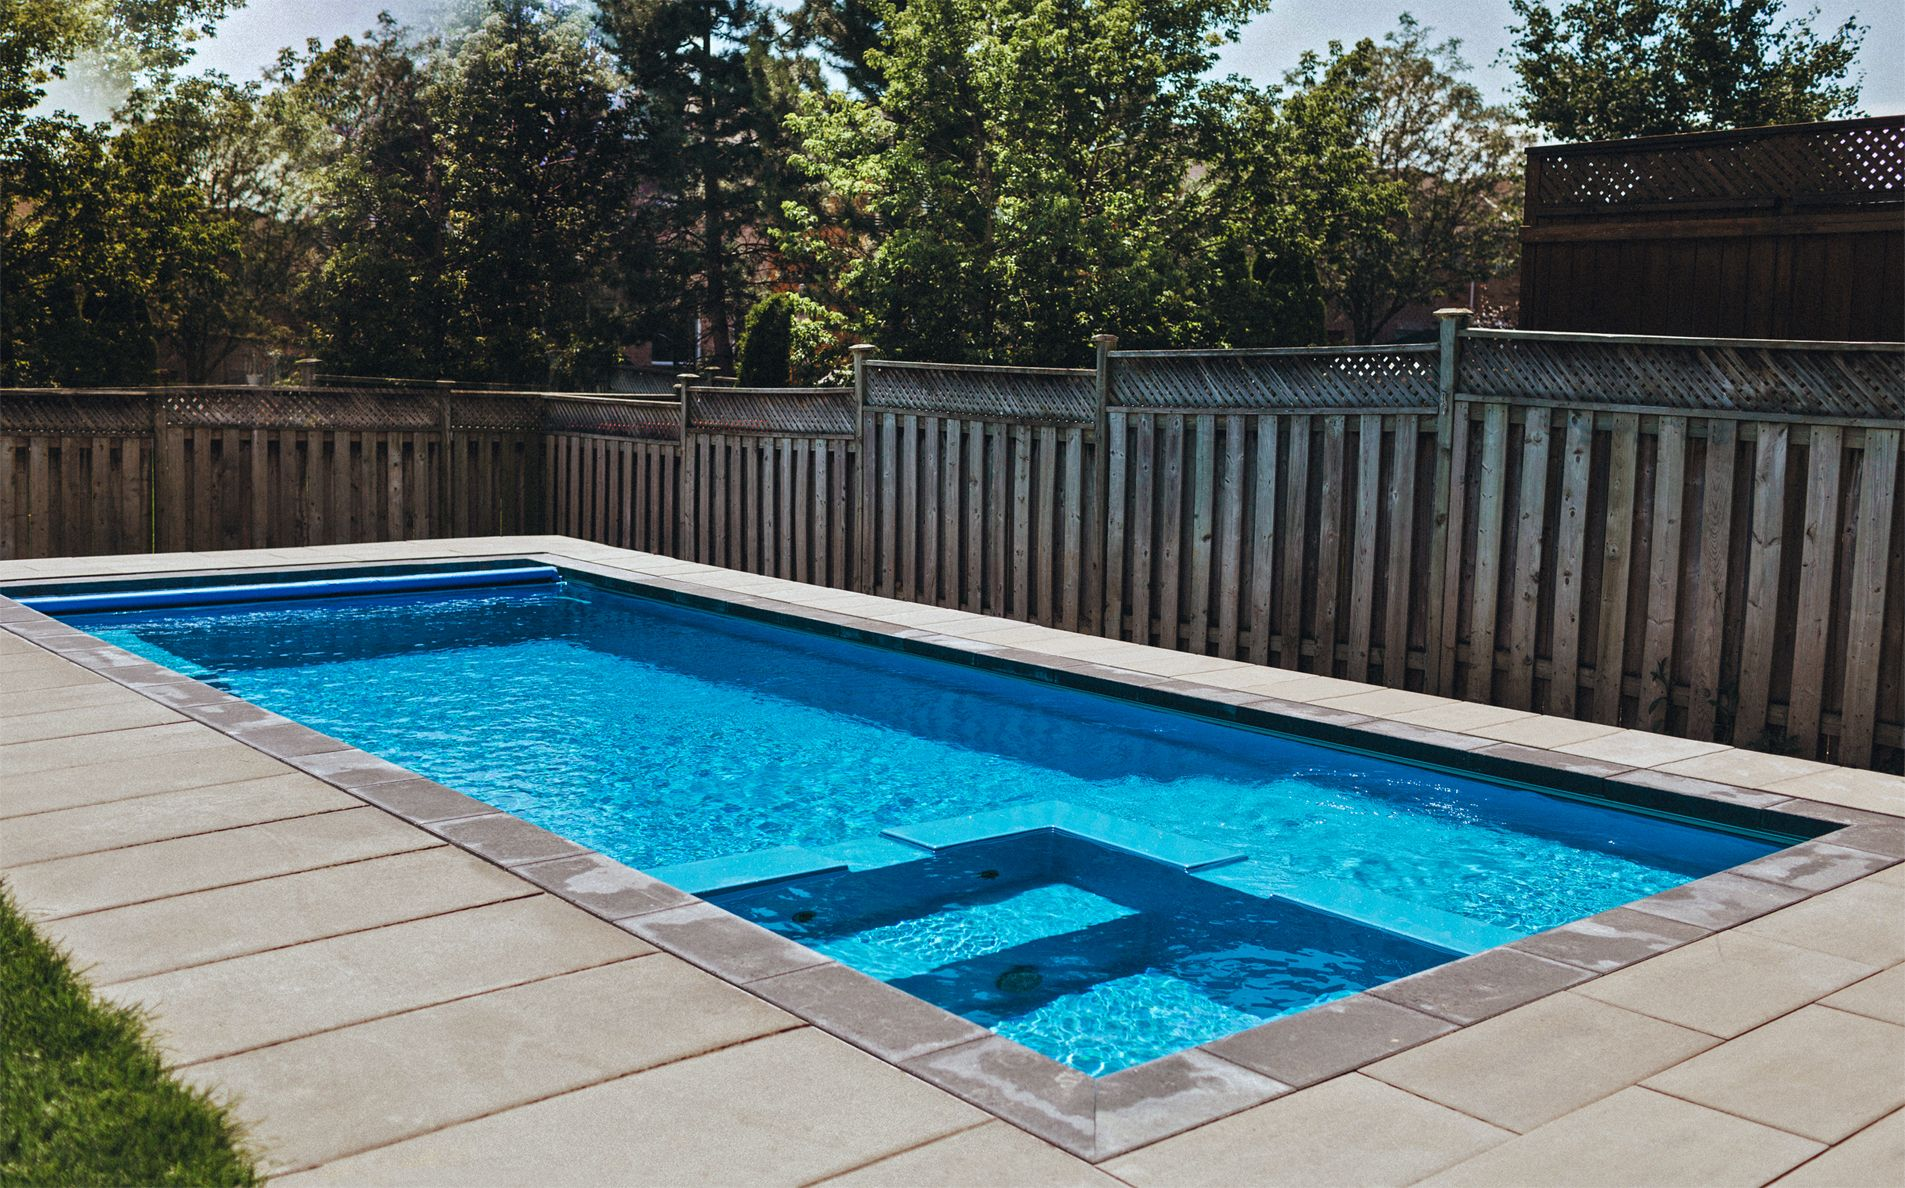 The Leisure Pools Limitless Composite Fiberglass Swimming Pool Offers You A Built In Spa A Splash Backyard Vacation Leisure Pools Fiberglass Swimming Pools